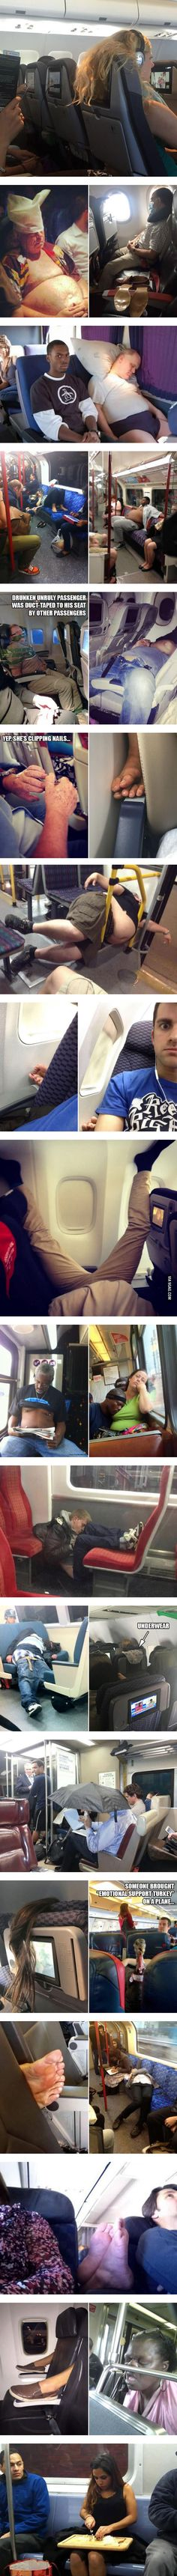 Passengers You DO NOT Want Sitting Near You - 9GAG